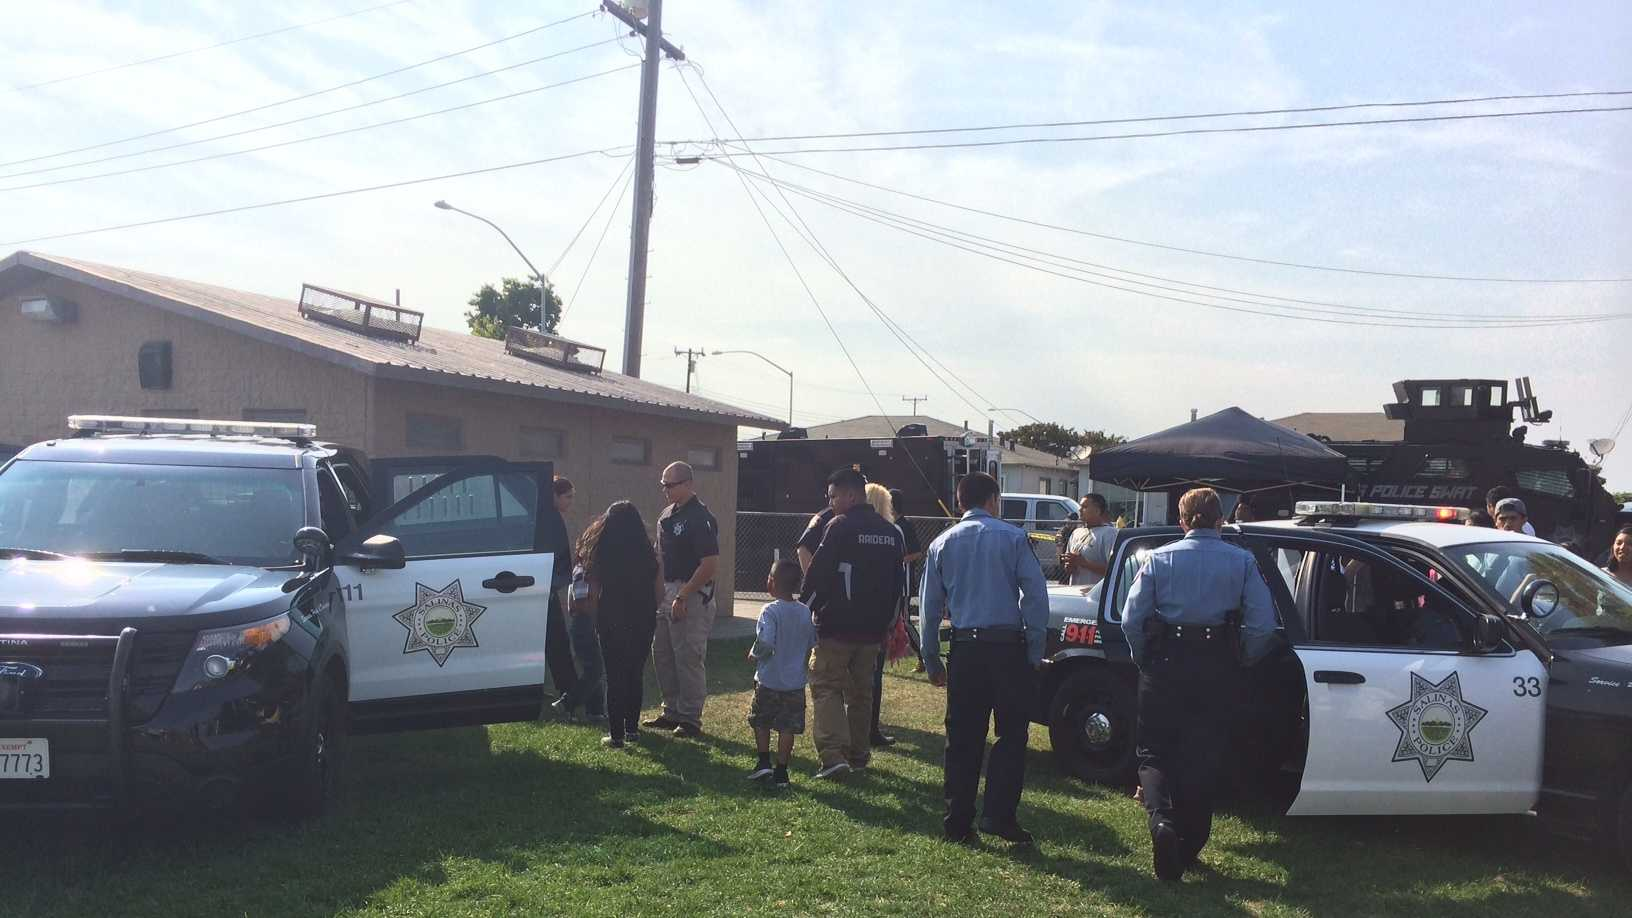 Salinas national night out gives neighbors, police opportunity to talk